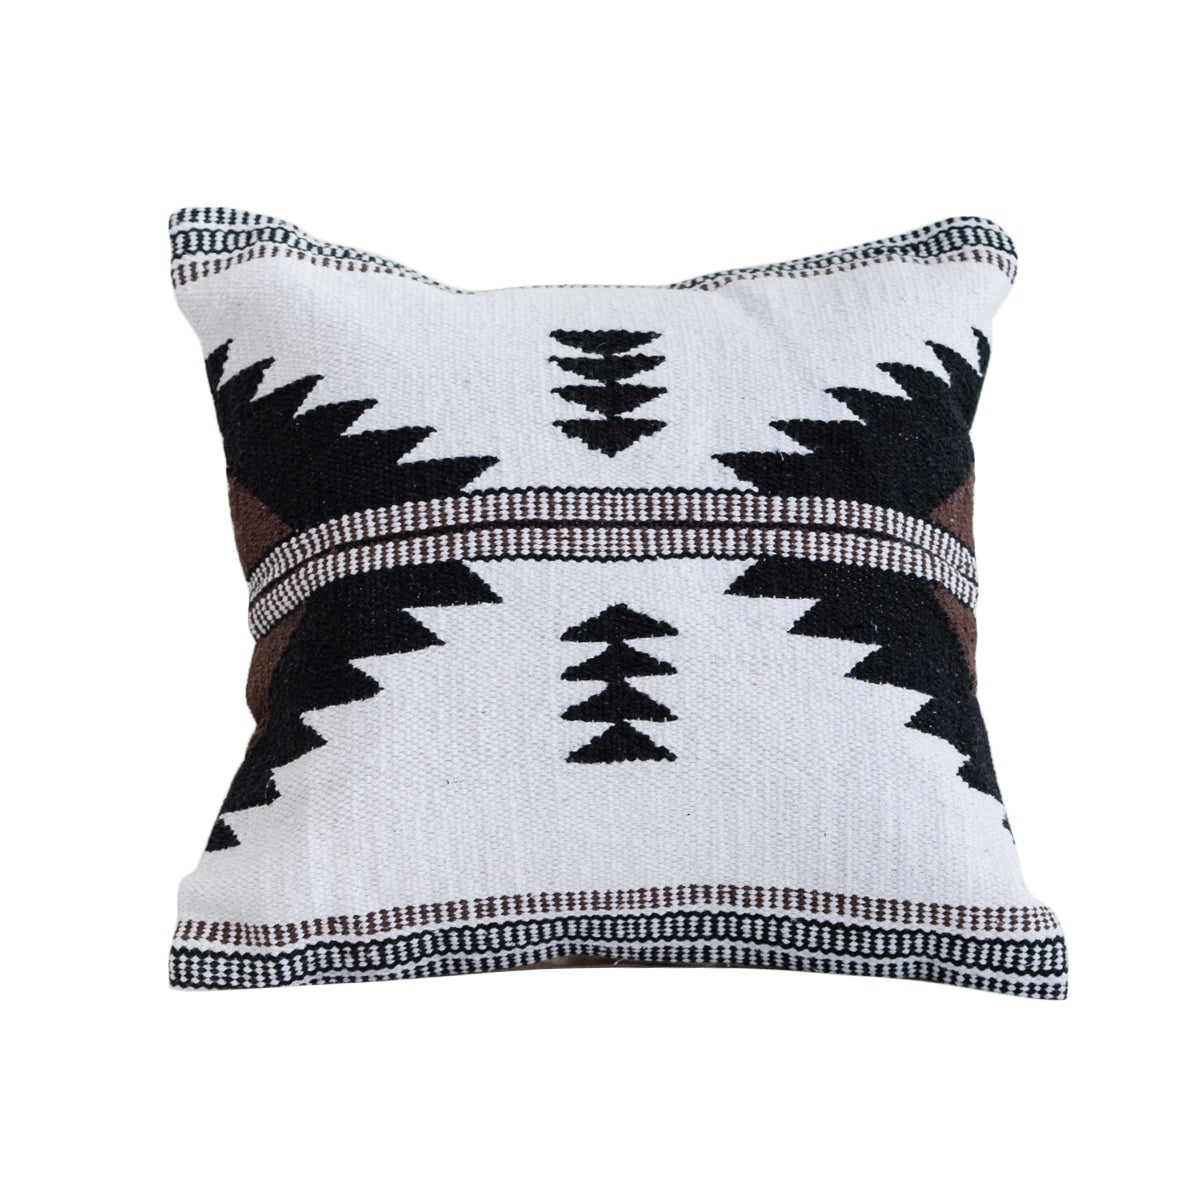 India Dormida Tan Cushion